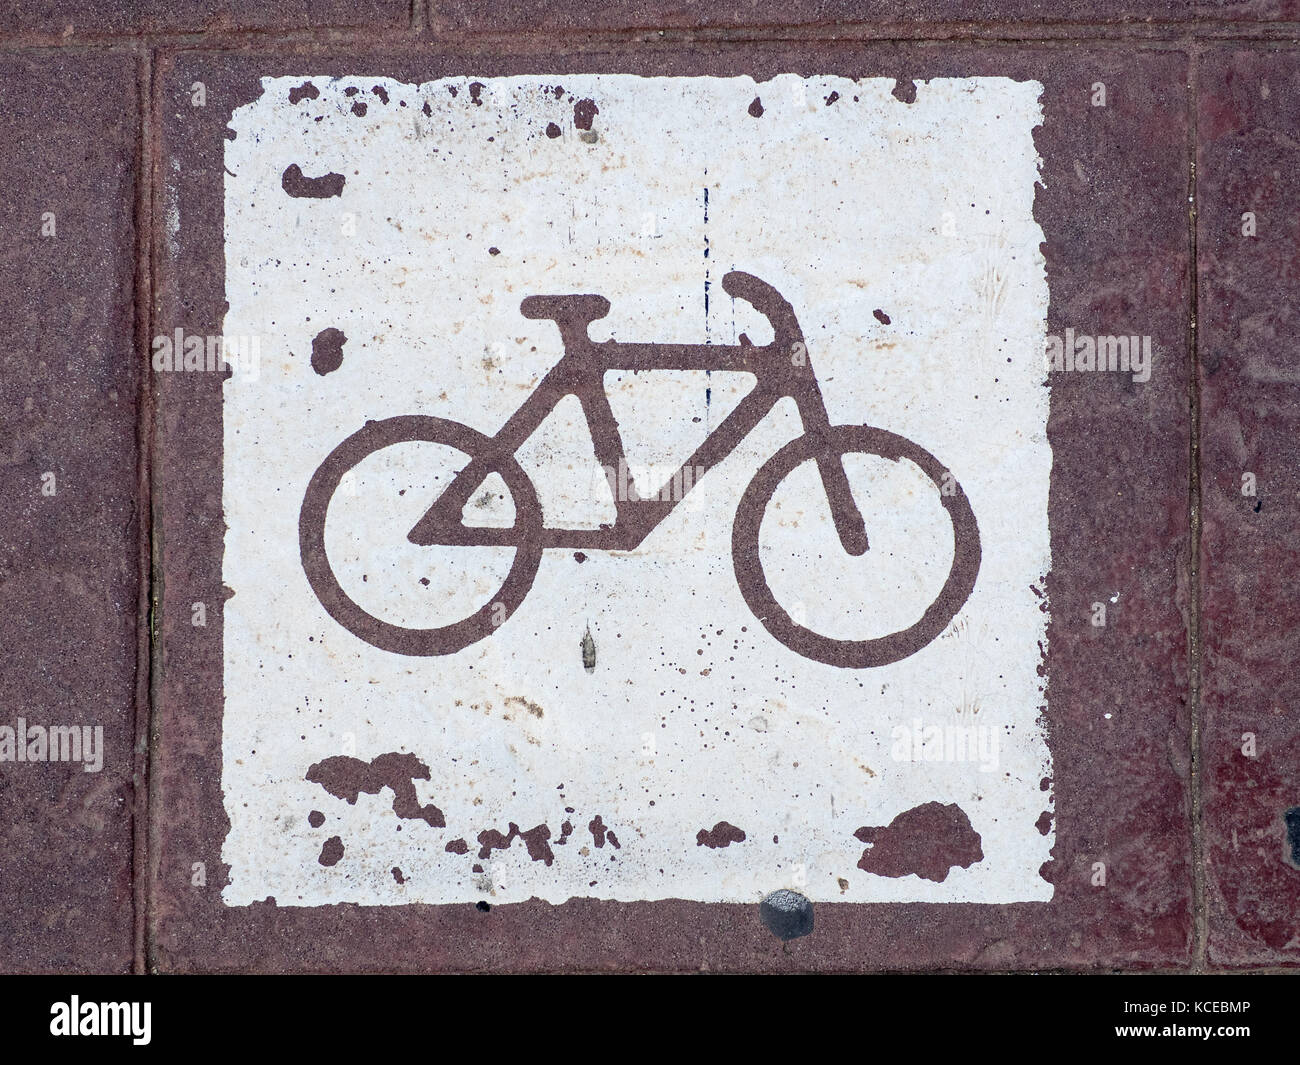 Bike Lane Path Pavement marking in Valencia Spain - Stock Image